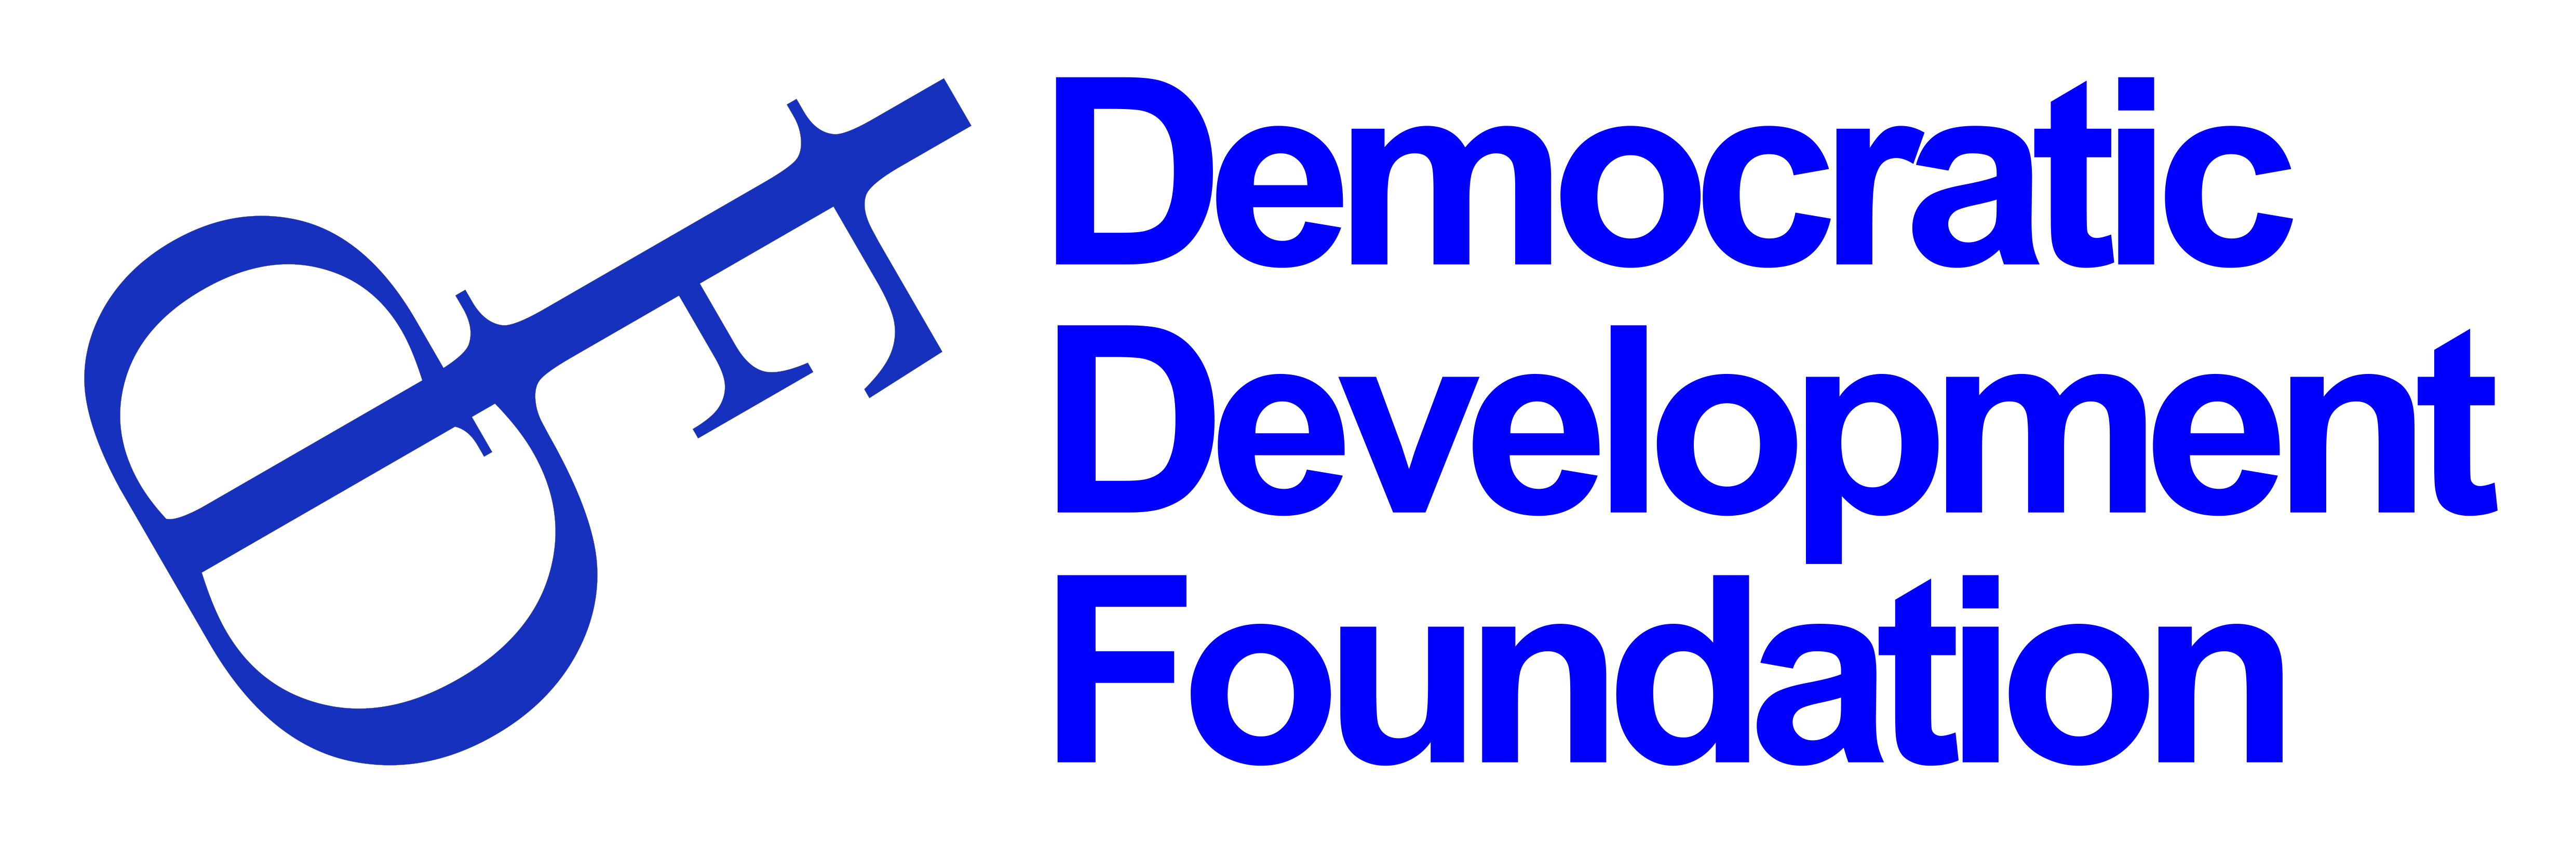 Democratic Development Foundation